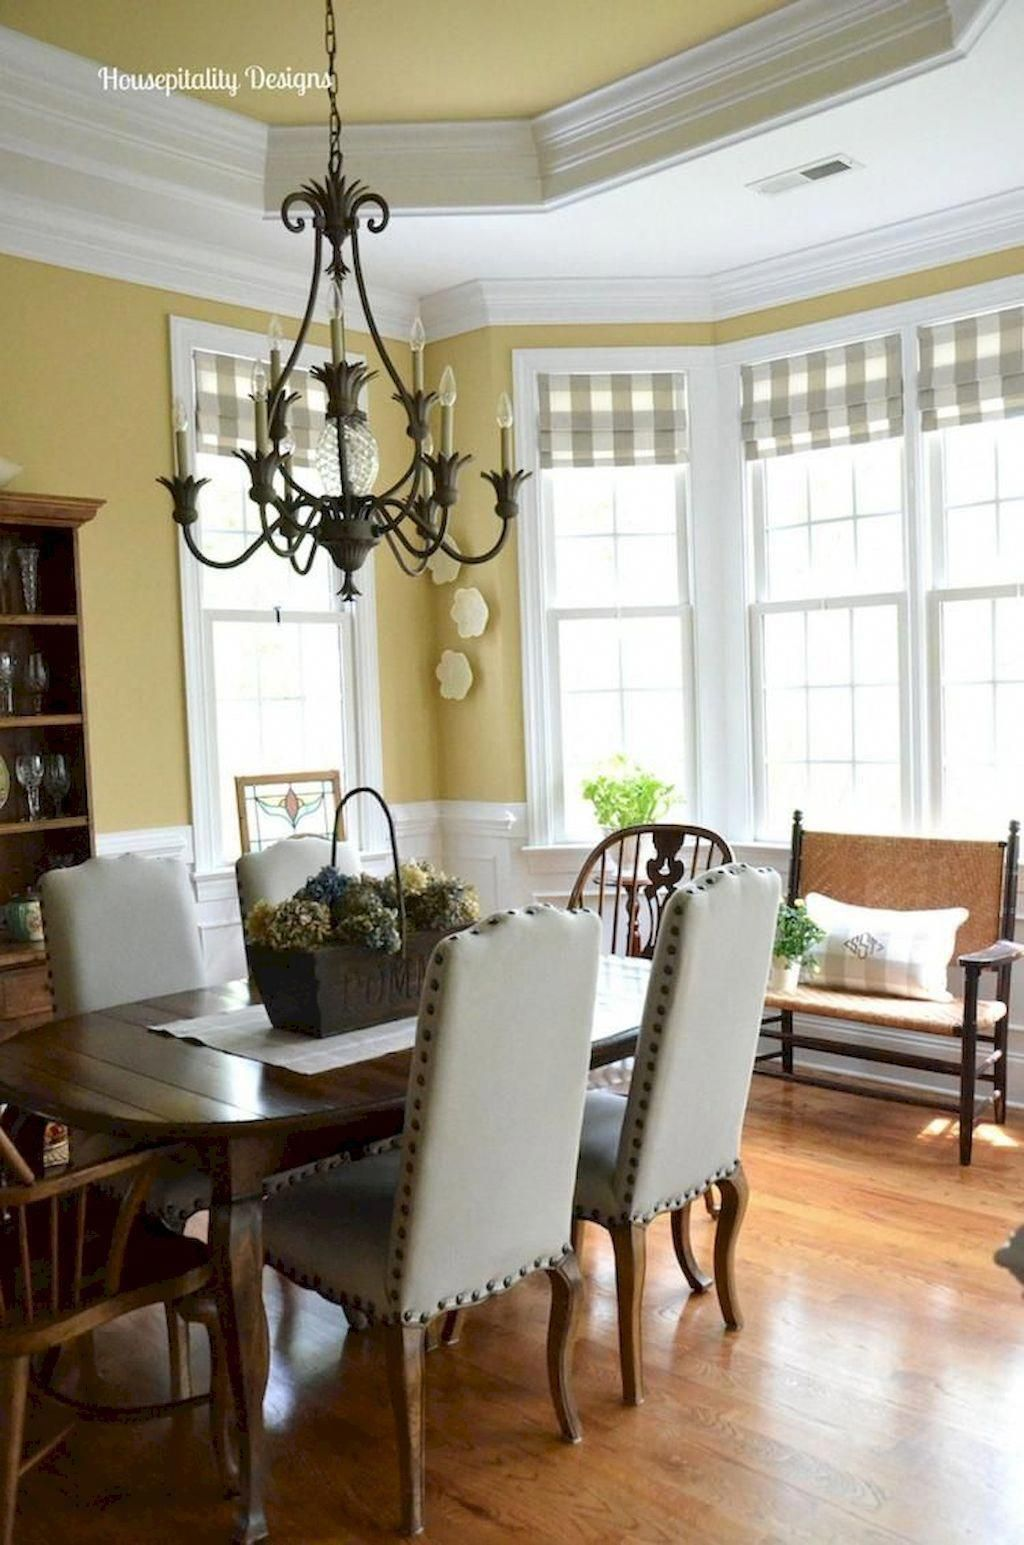 Frenchcountrydecorating | French country decorating in 2019